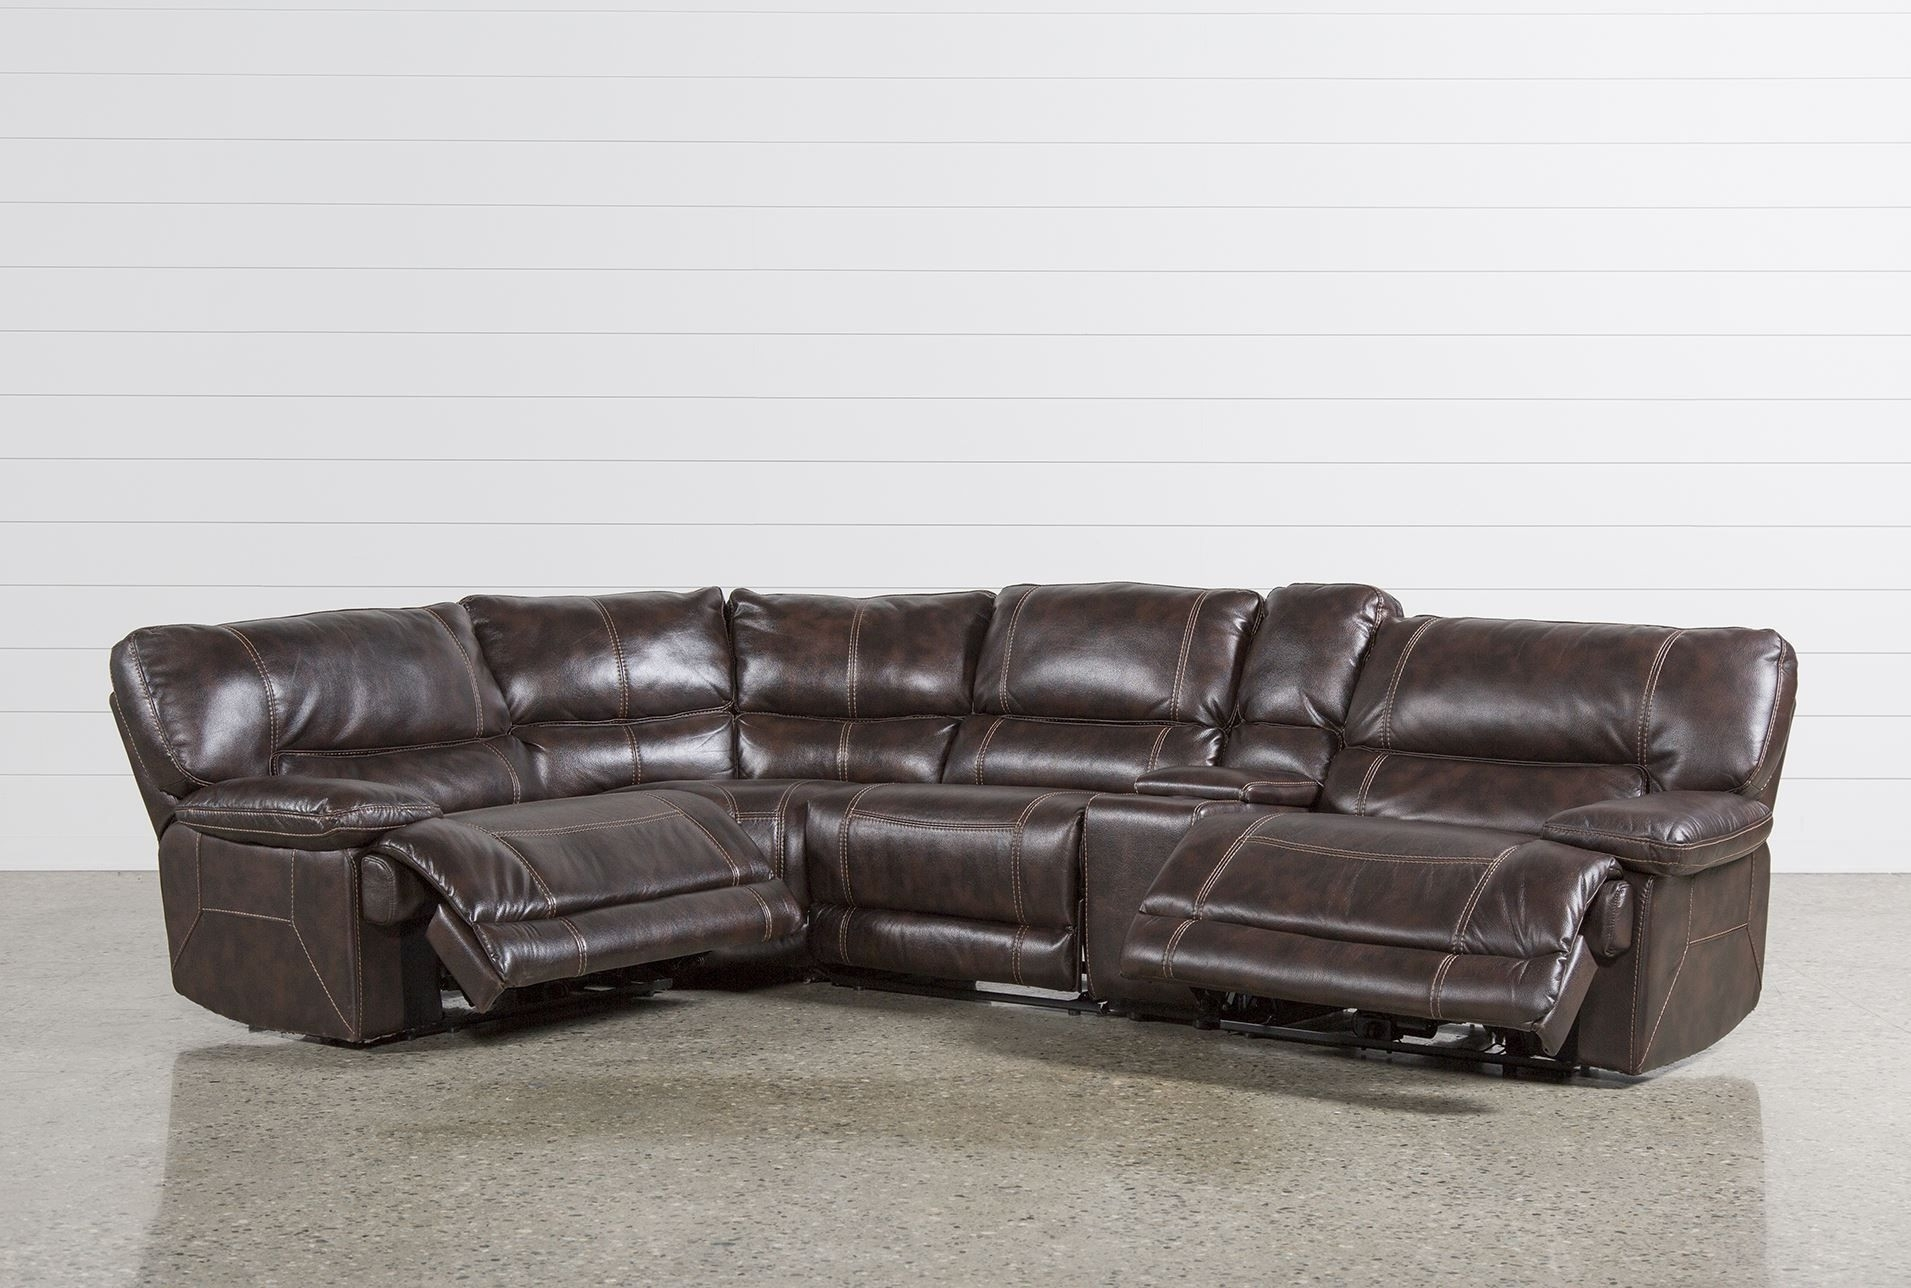 Living Spaces Sectional – Tidex For Aspen 2 Piece Sectionals With Raf Chaise (View 23 of 25)